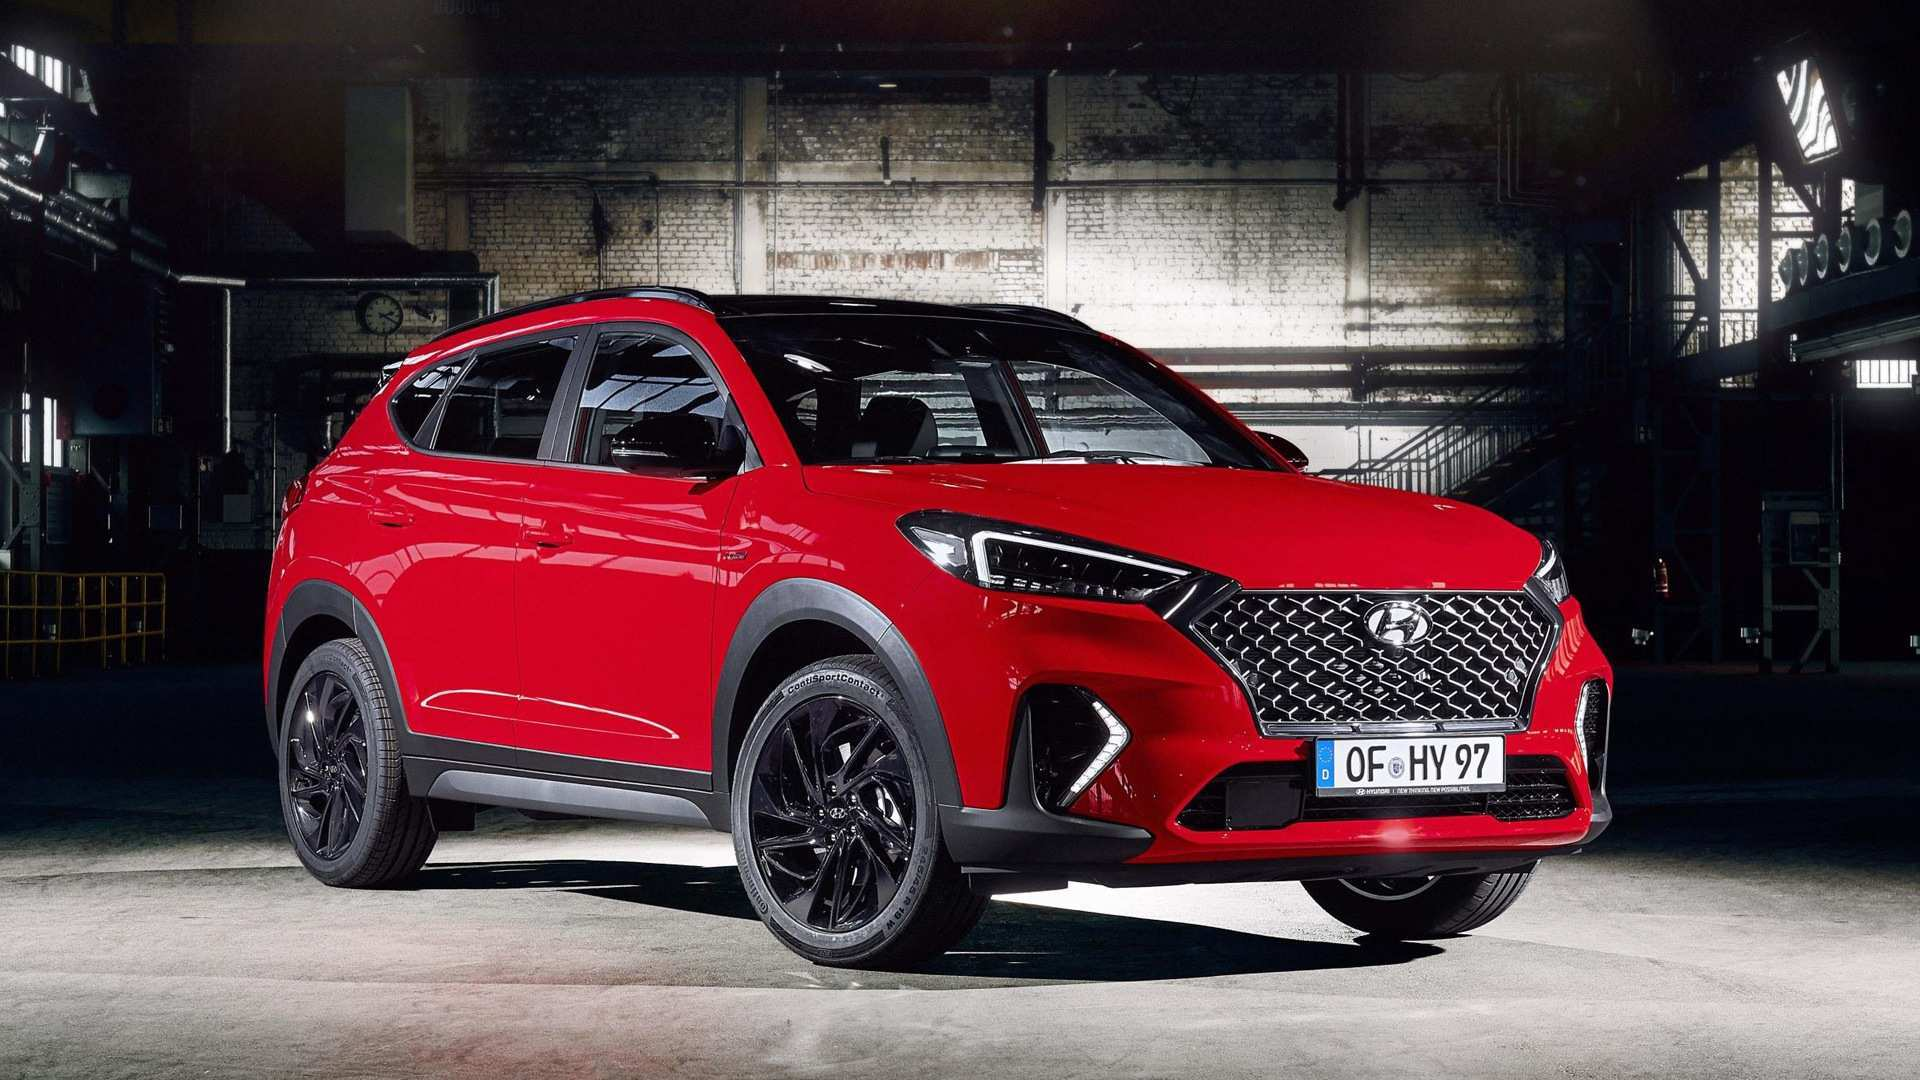 37 New Hyundai Tucson N Line 2020 Model